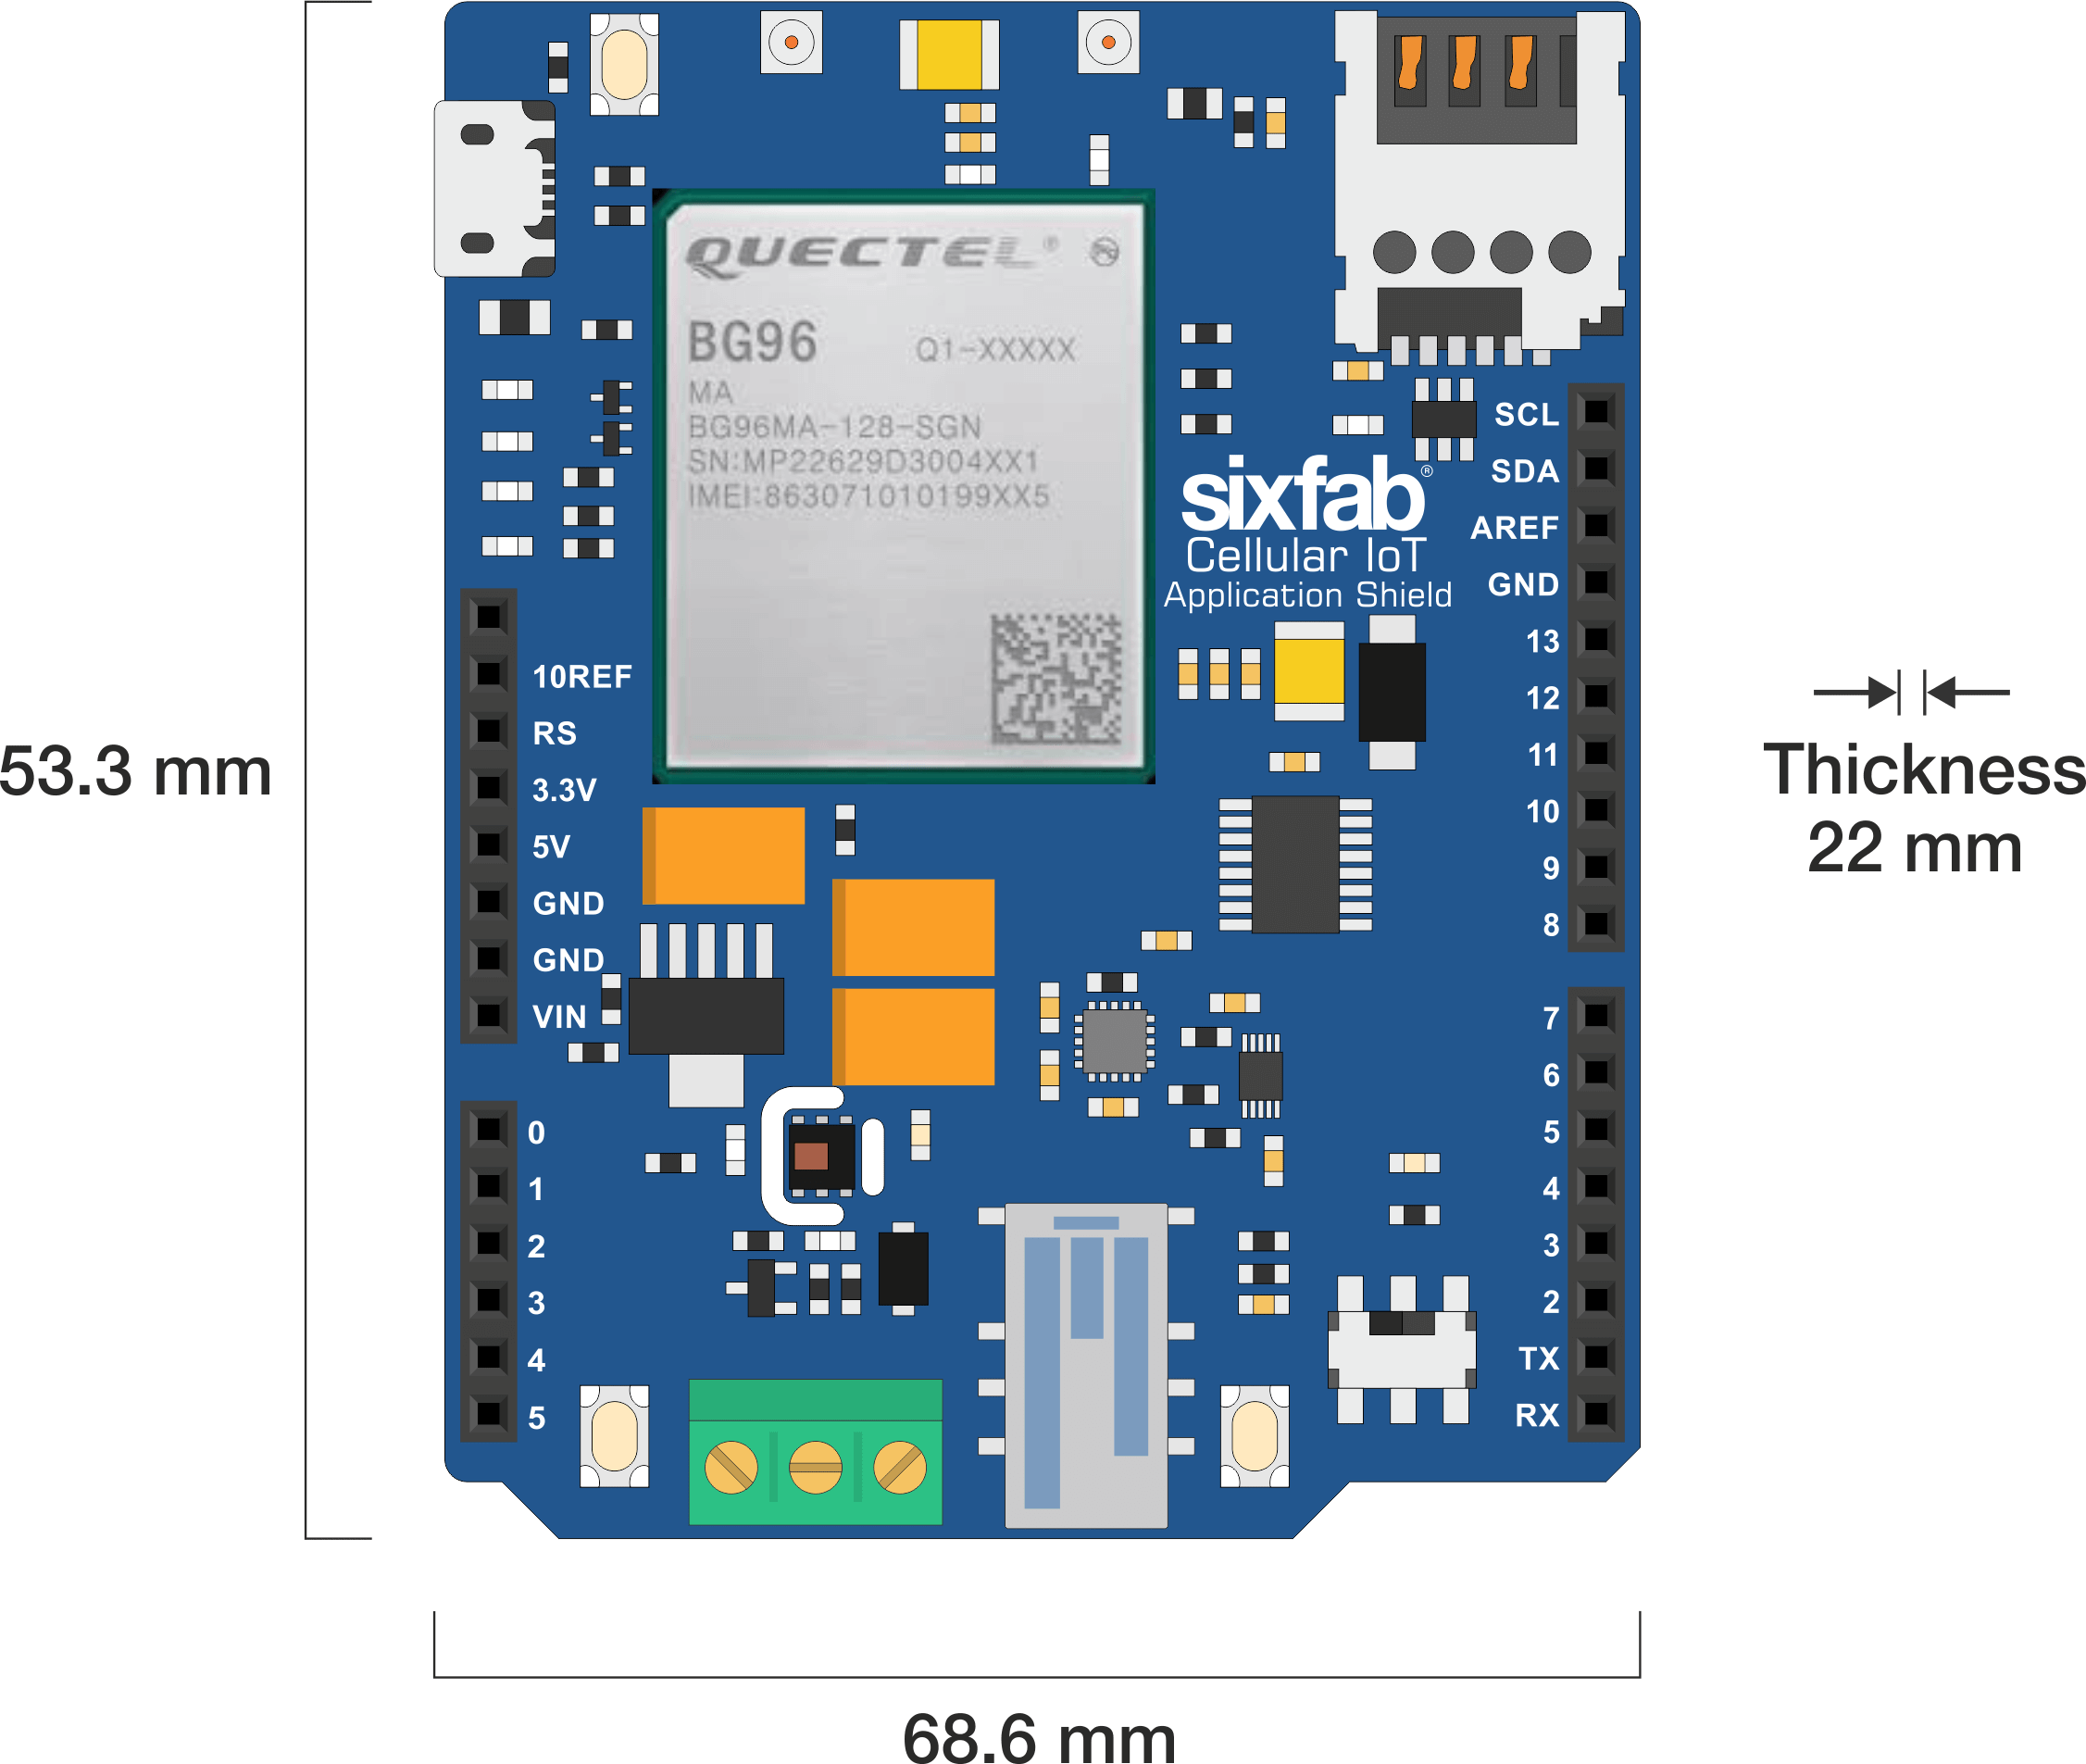 Arduino Cellular IoT Application Shield Dimension